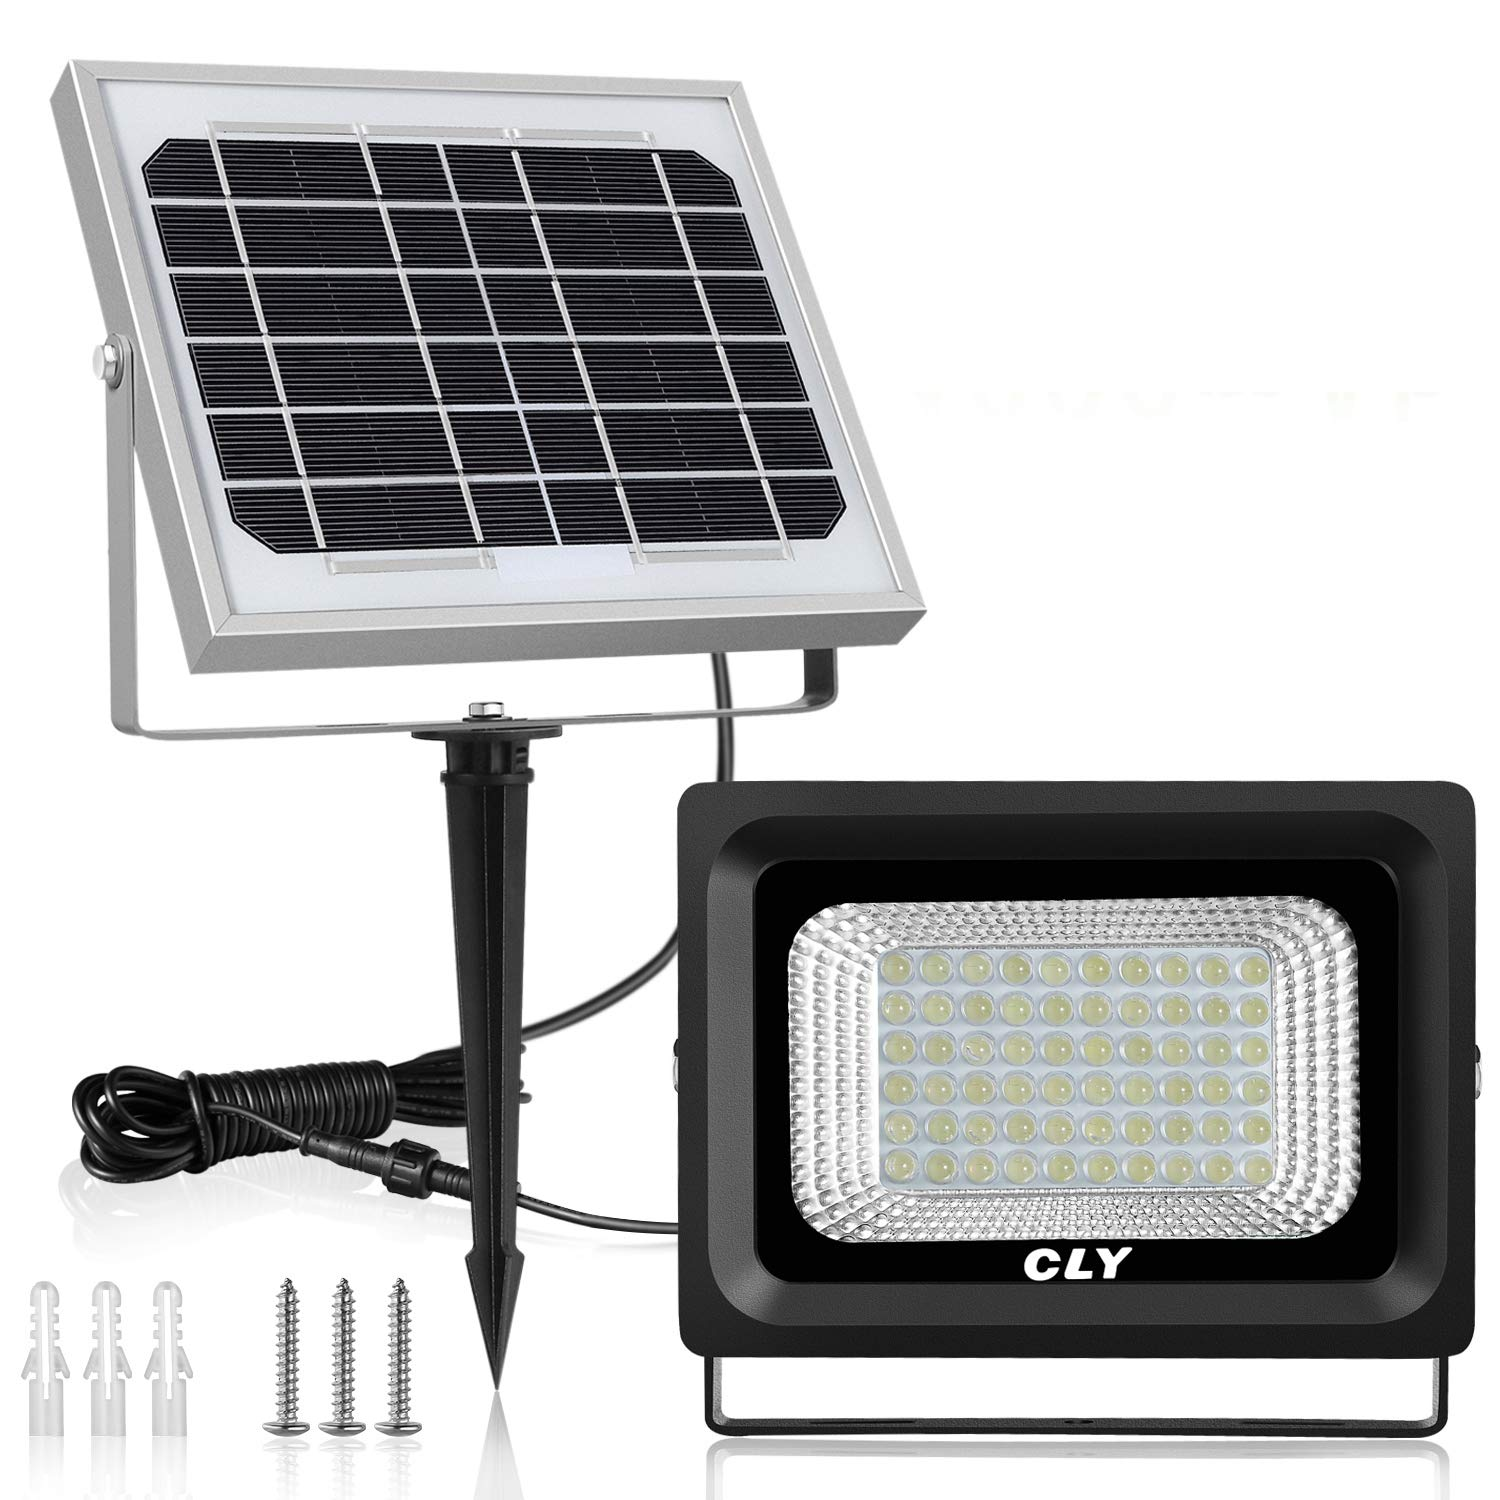 Solar Flood Light Outdoor 60 LED Security Lights IP66 Waterproof 300 Lumens Floodlights Auto-Induction Solar Power Bright Light for Lawn Backyard Garden (Daylight White)